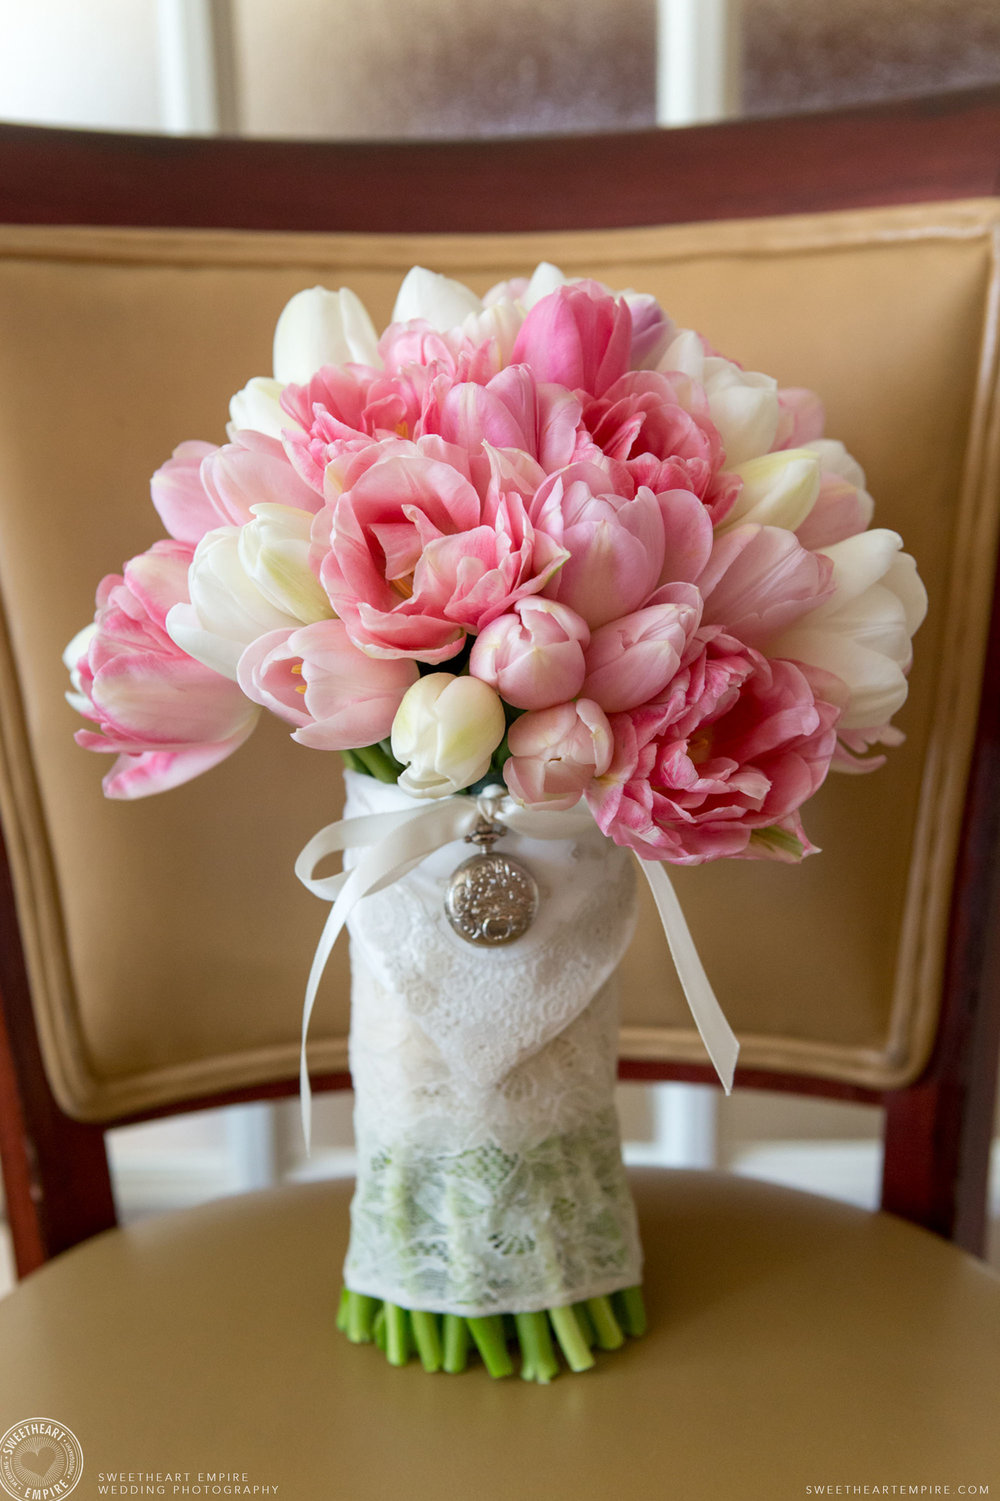 The bride's beautiful bouquet; Toronto Reference Library Wedding